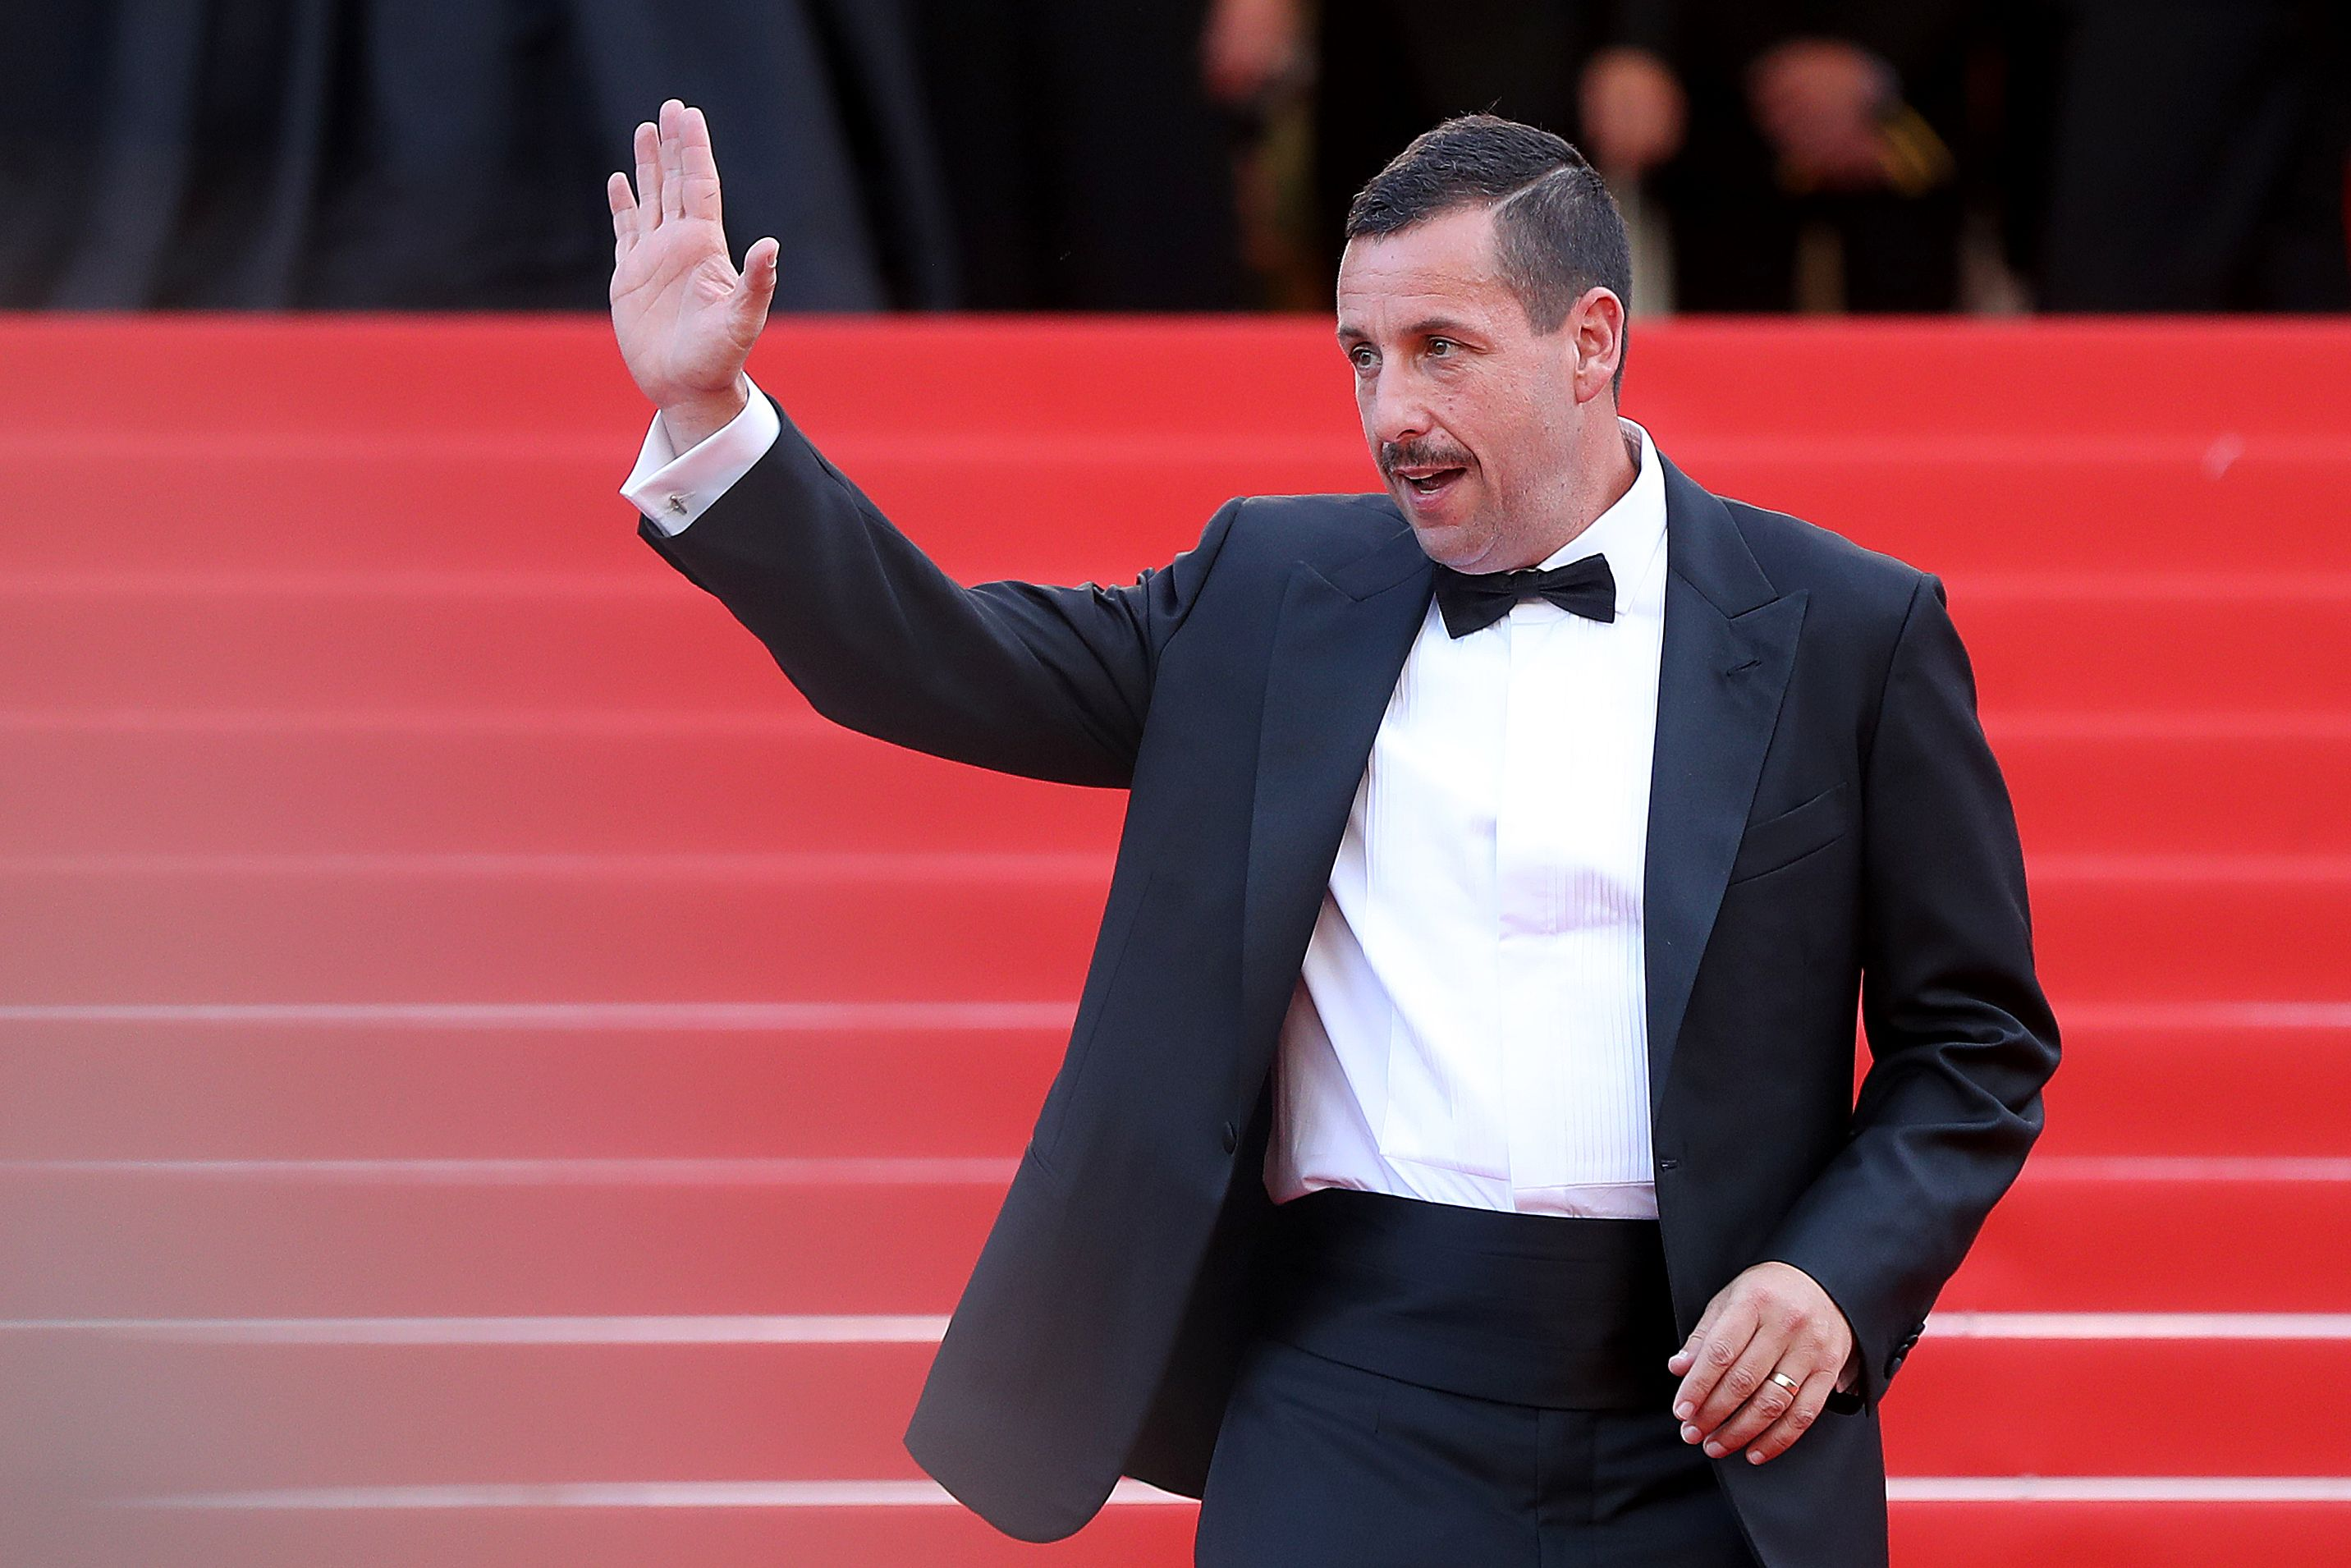 Adam Sandler receives a standing ovation at Cannes Film Festival